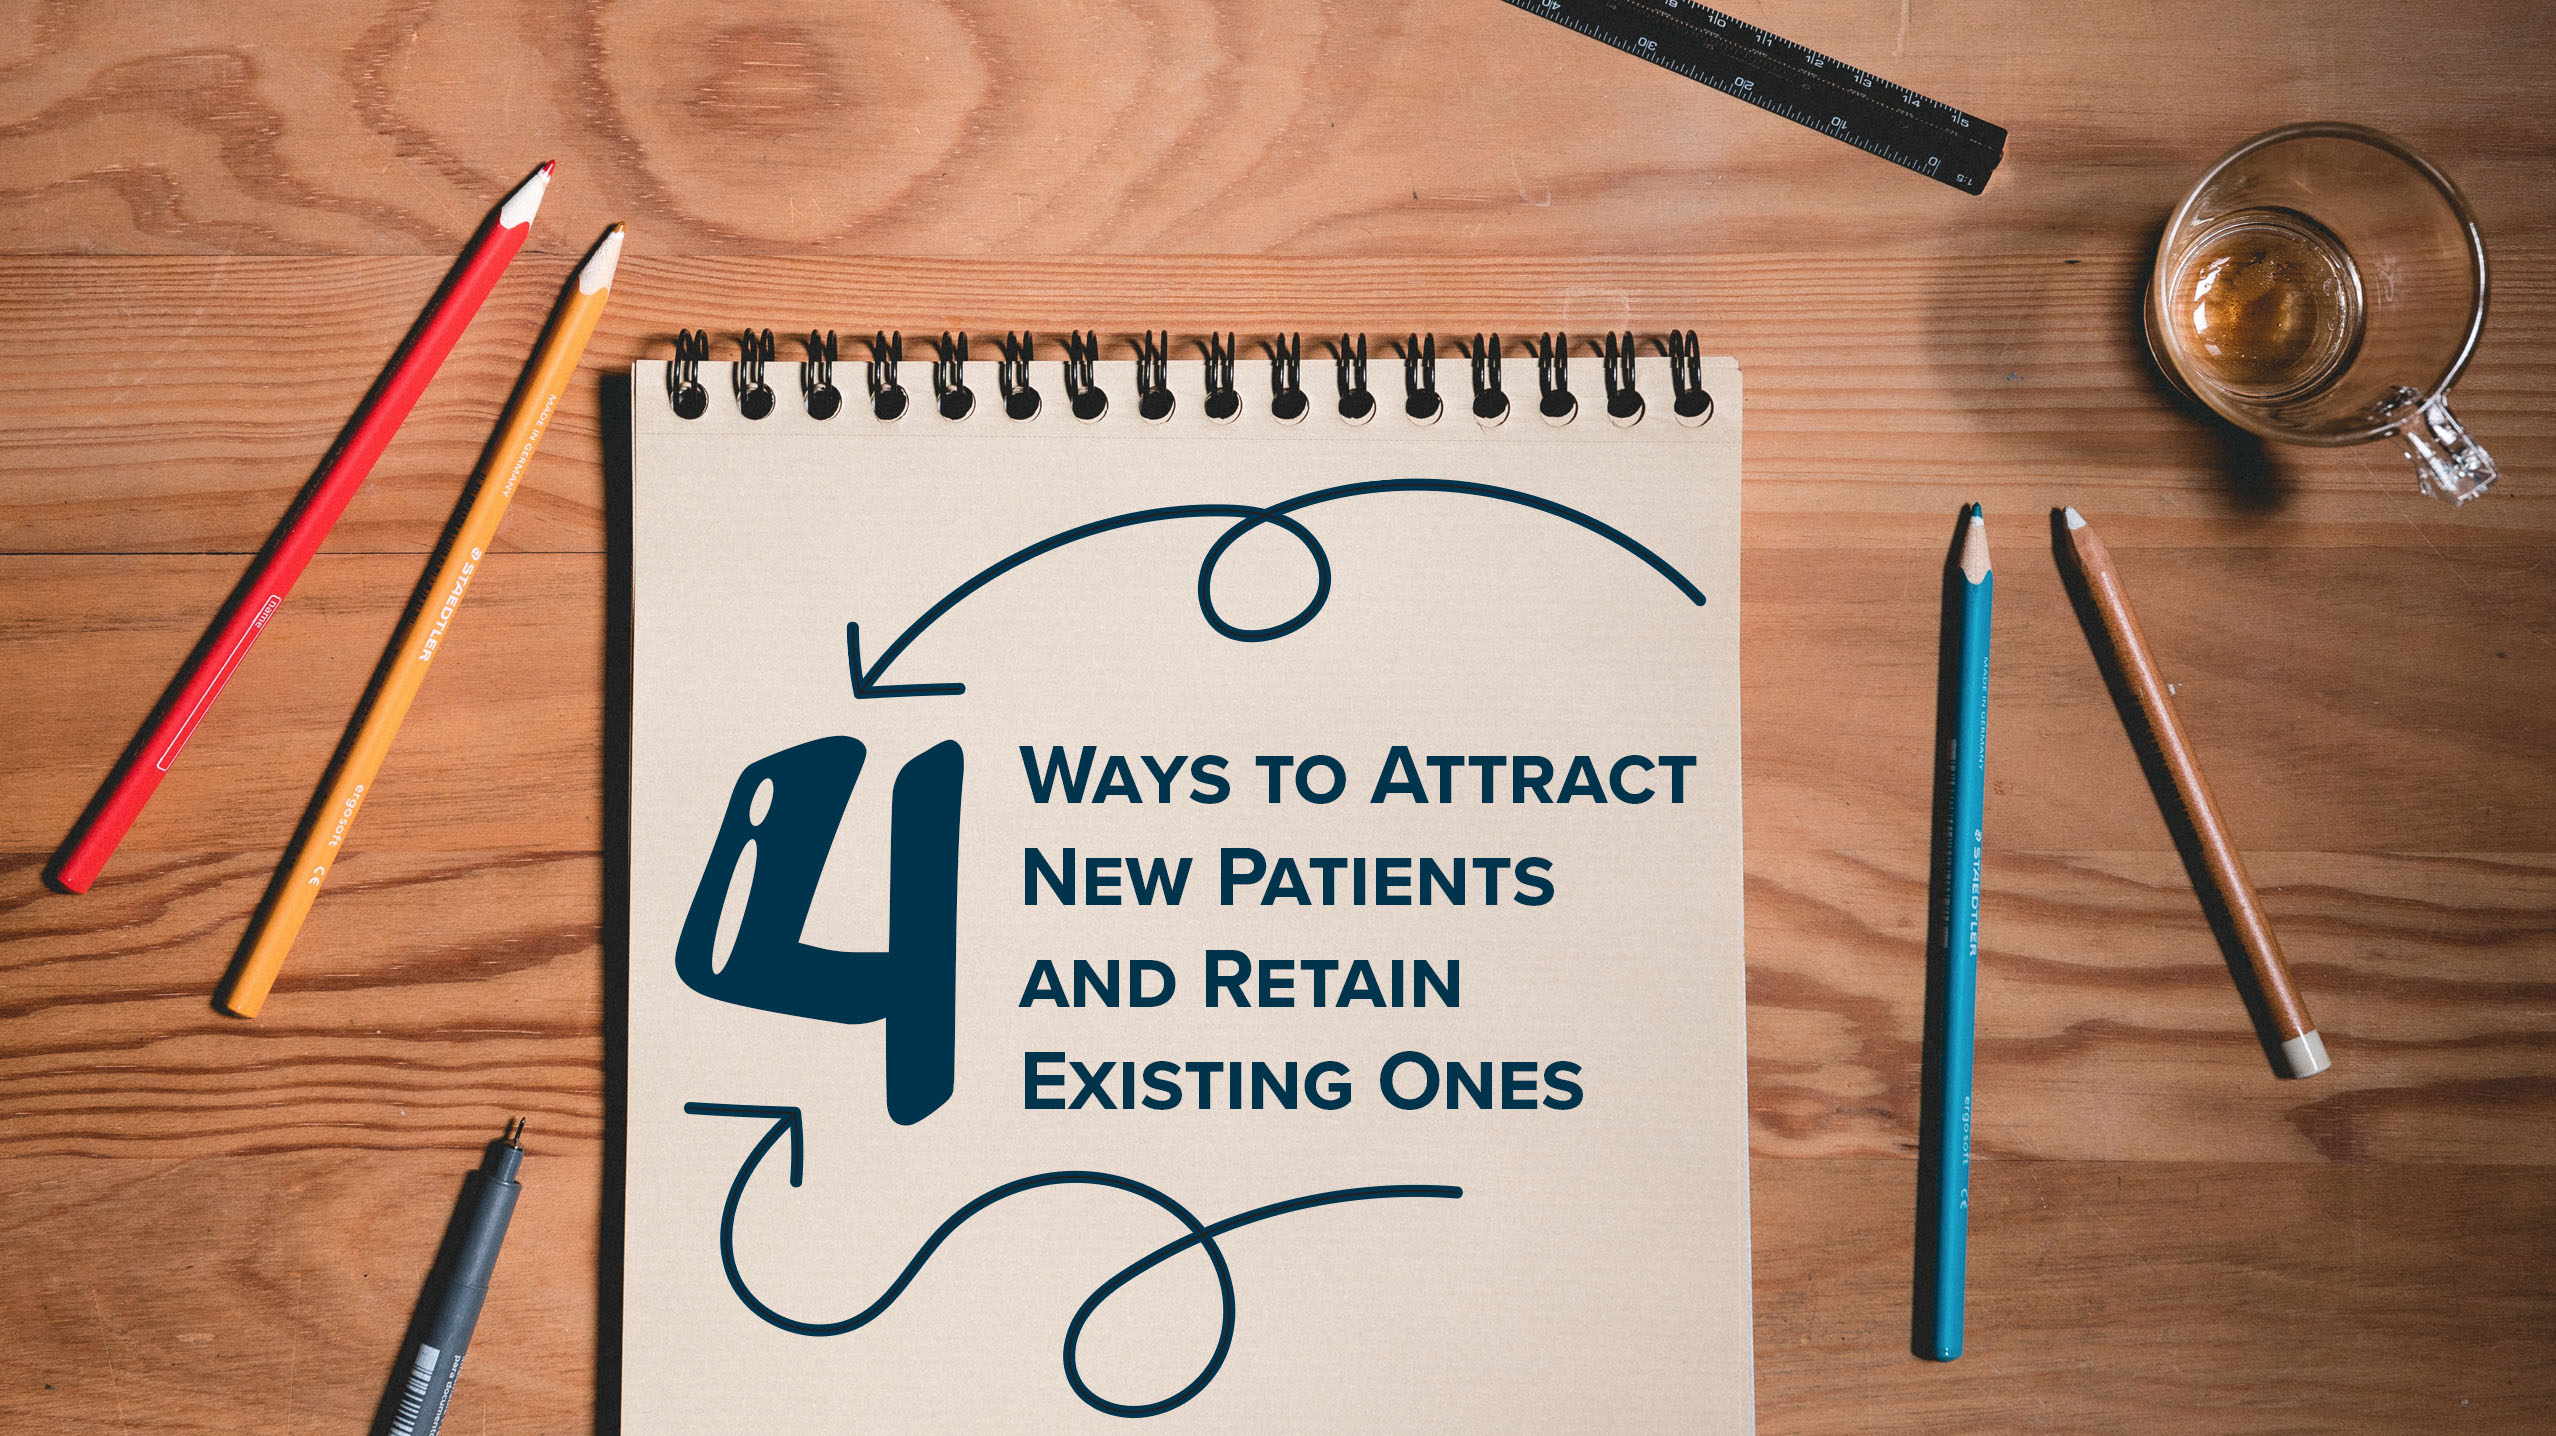 4 ways to attract new patients